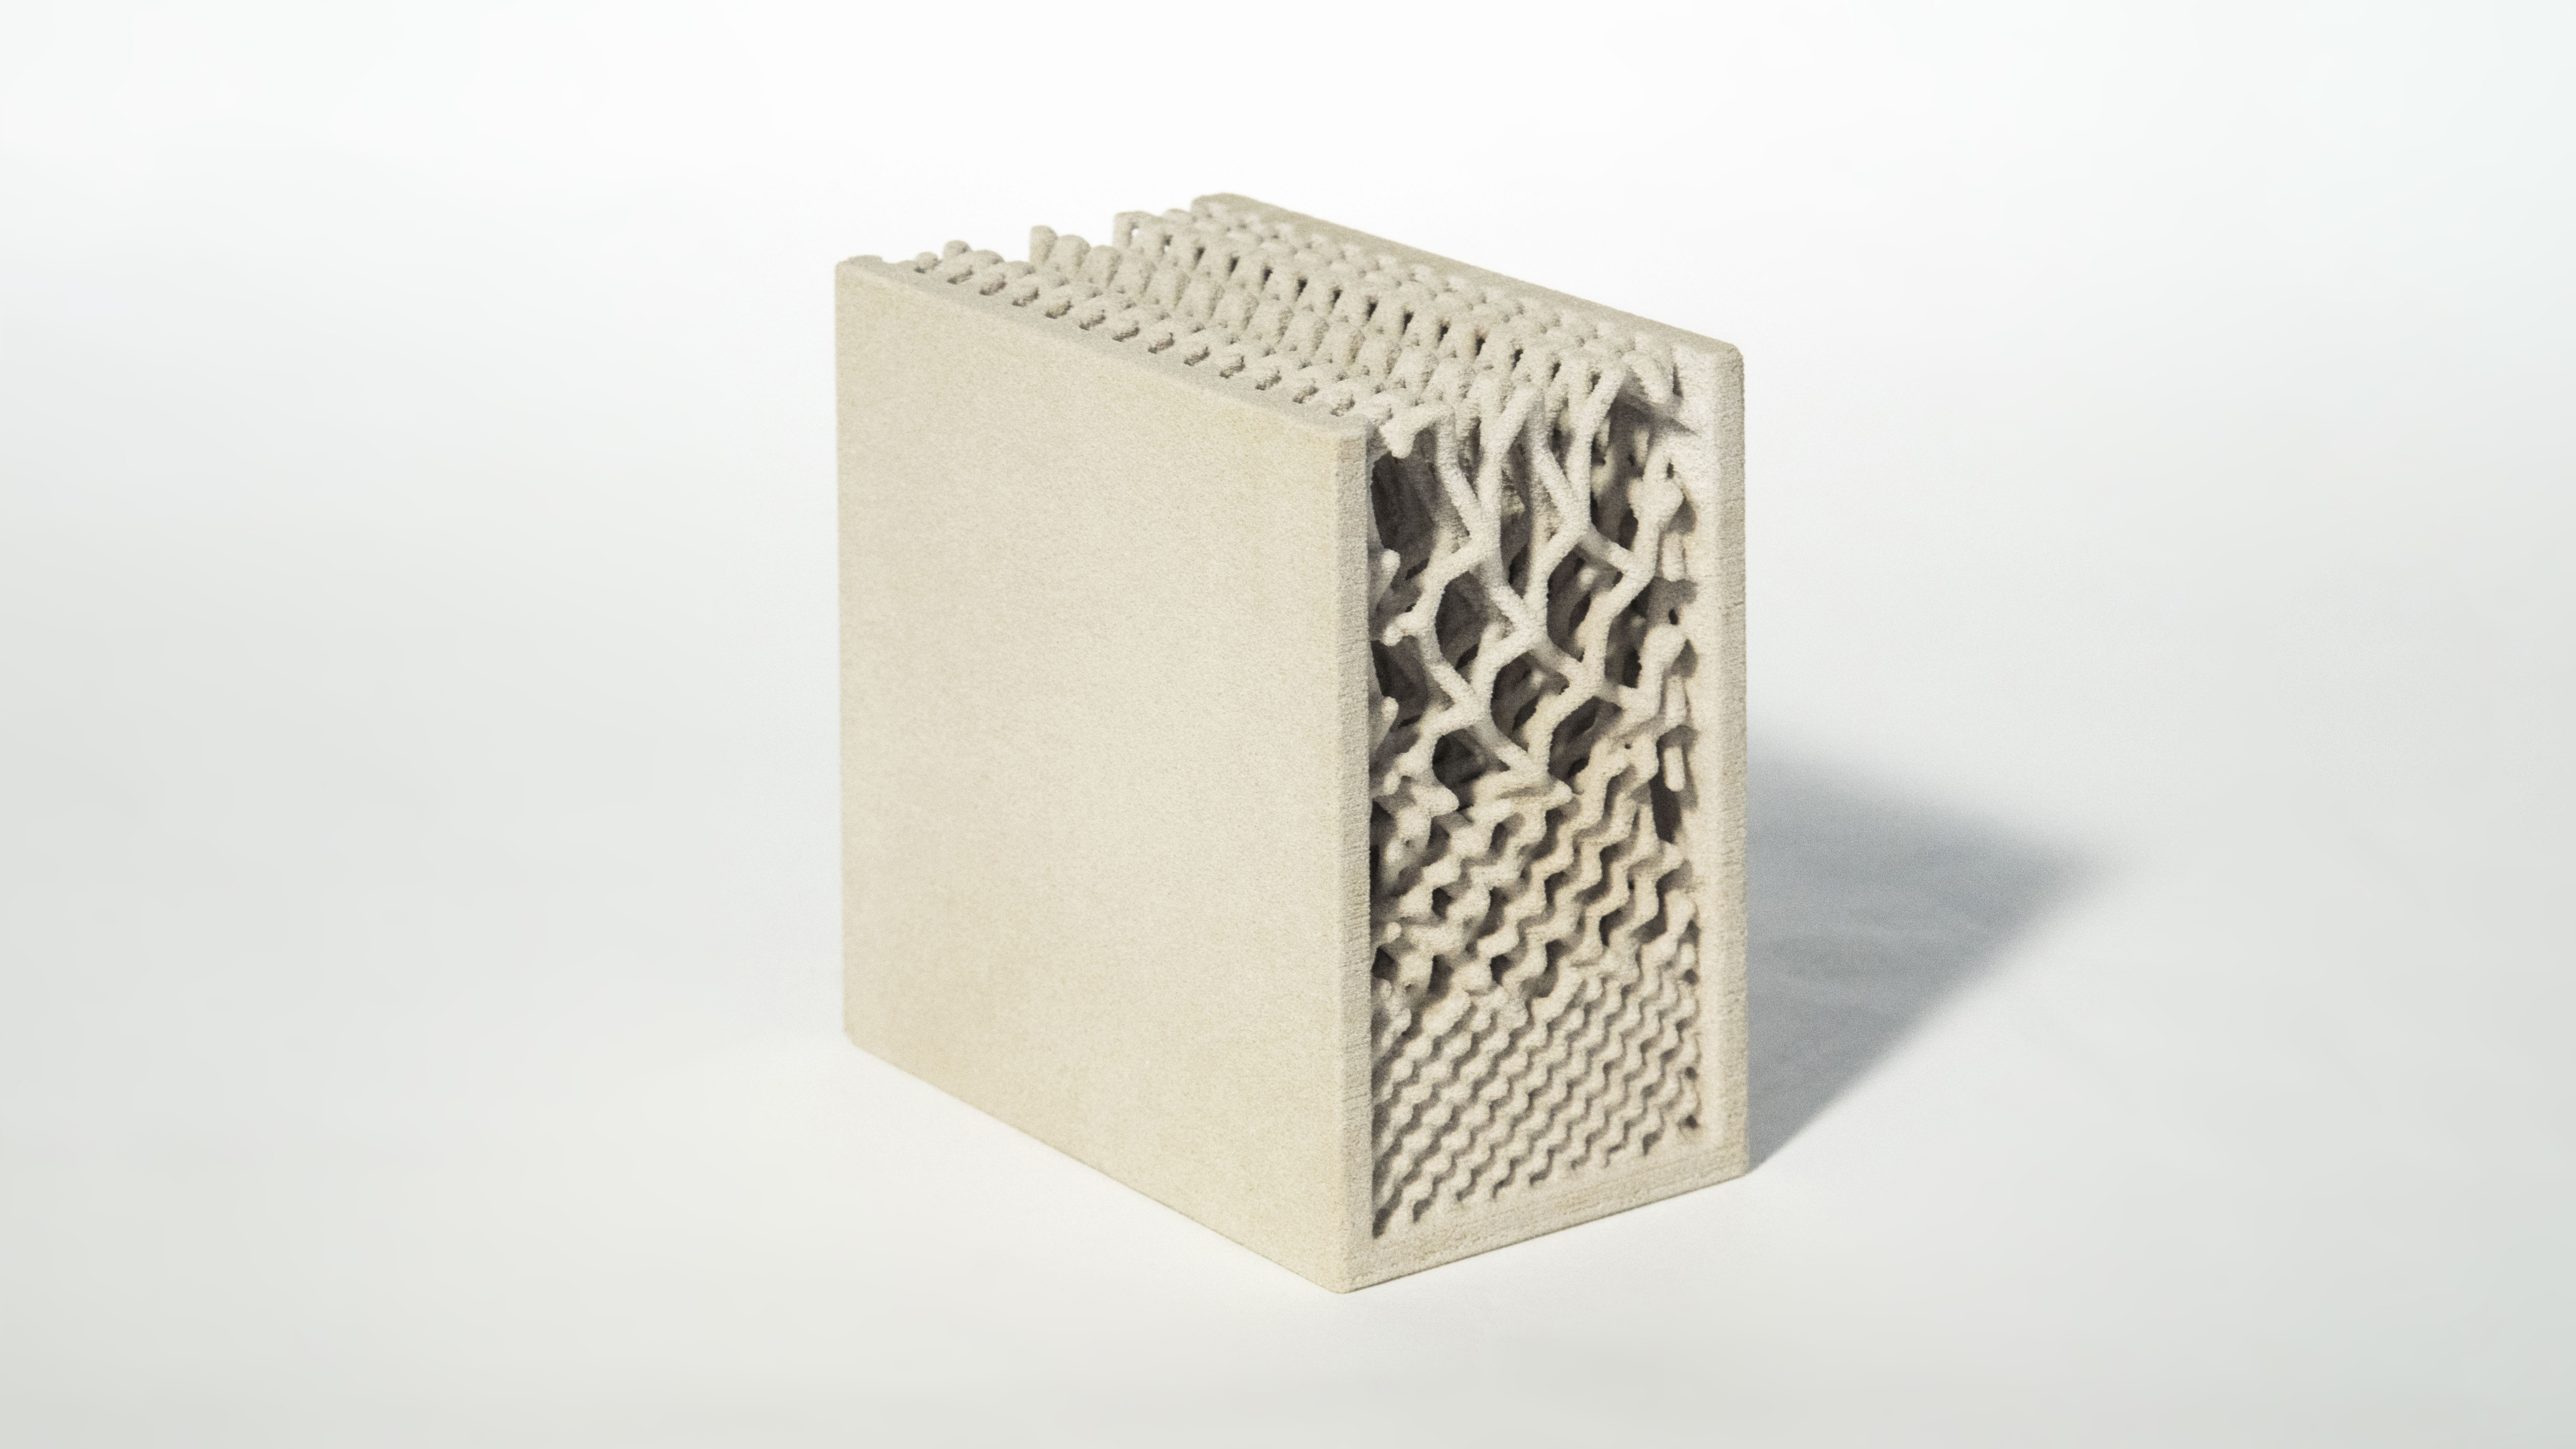 3D printed graded lattice for structural differentiation (Raphael Pastrana, Francisco Regalado)